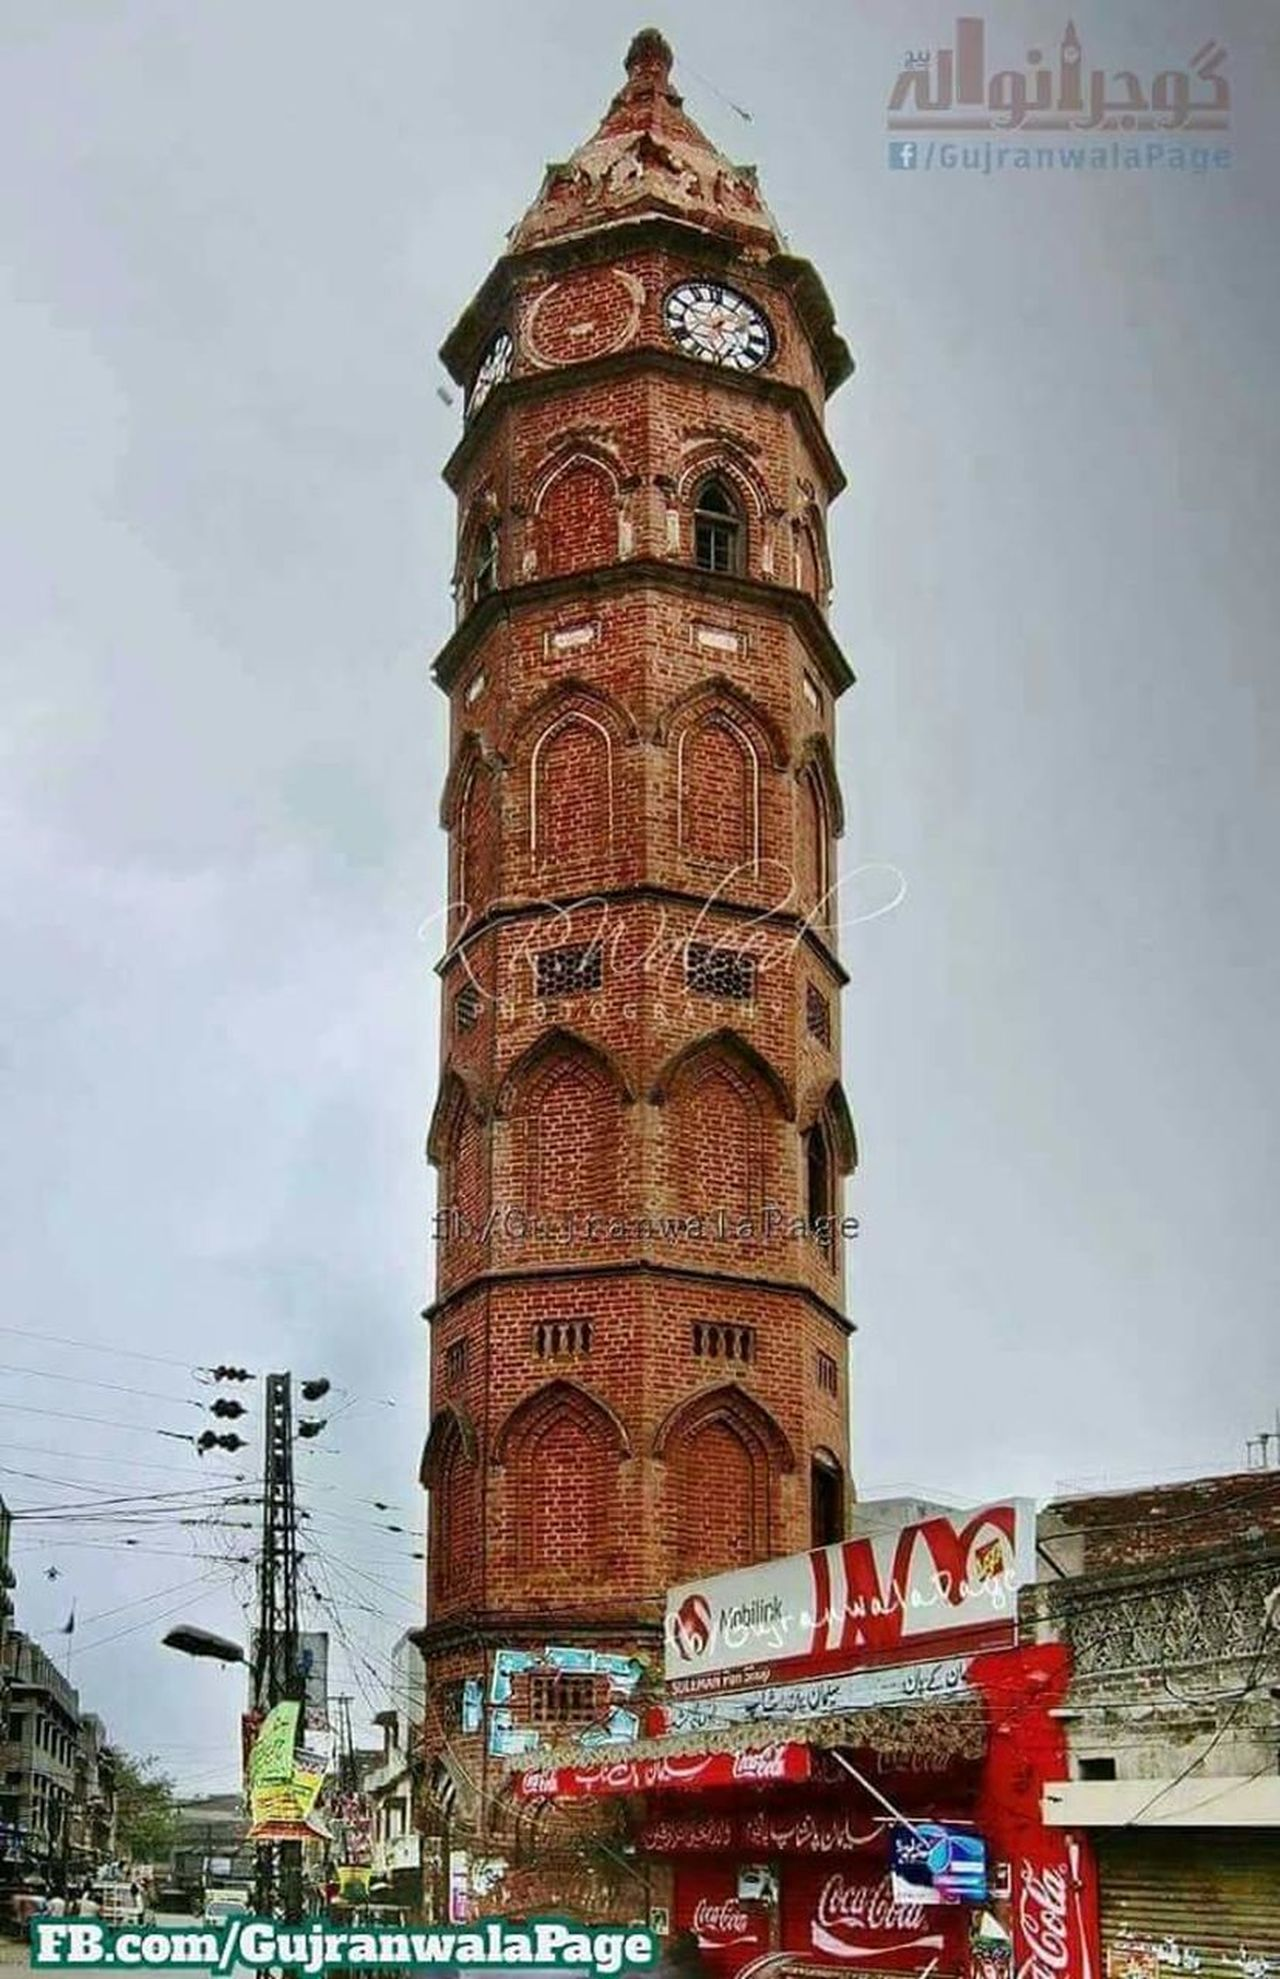 Historical Watch tower in my city Gujranwala pakistan Architecture City Building Exterior Tower Clock Tower Outdoors Cultures People Taking Photos Hello World Pakistan Beauty Of Pakistan Chear Happy :) Hanging Out Travel Destinations Sky Clock Enjoying Life Childhood That's Me Day Pakiatan Uniqe Relaxing